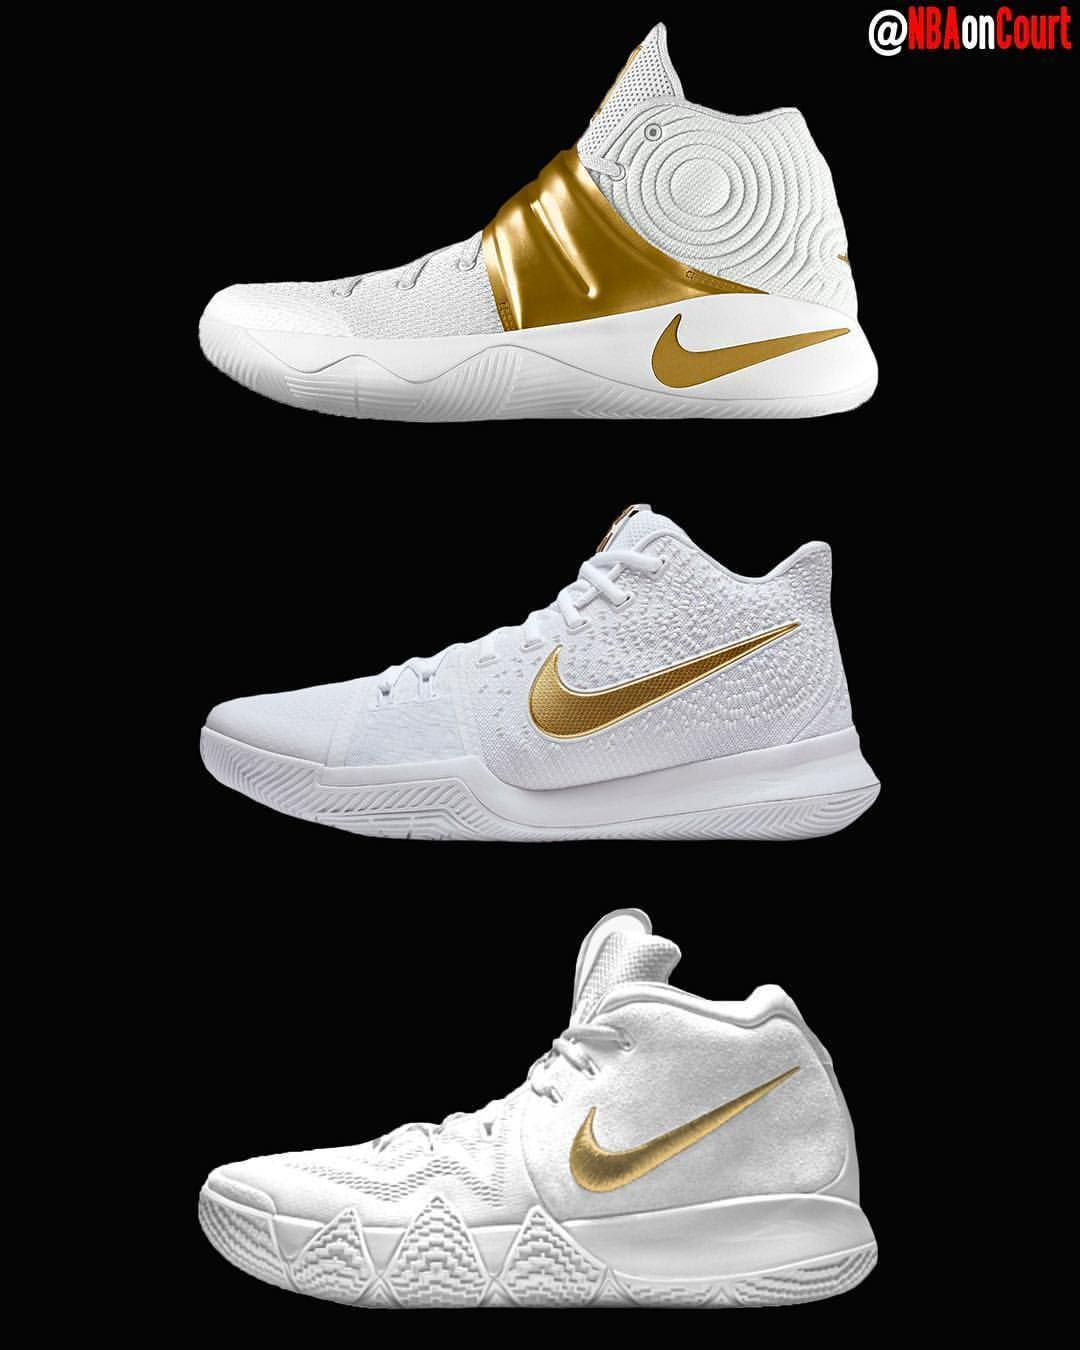 online store 4479c 903ad Pin by C Melerine on Kicks in 2019 | Girls basketball shoes ...